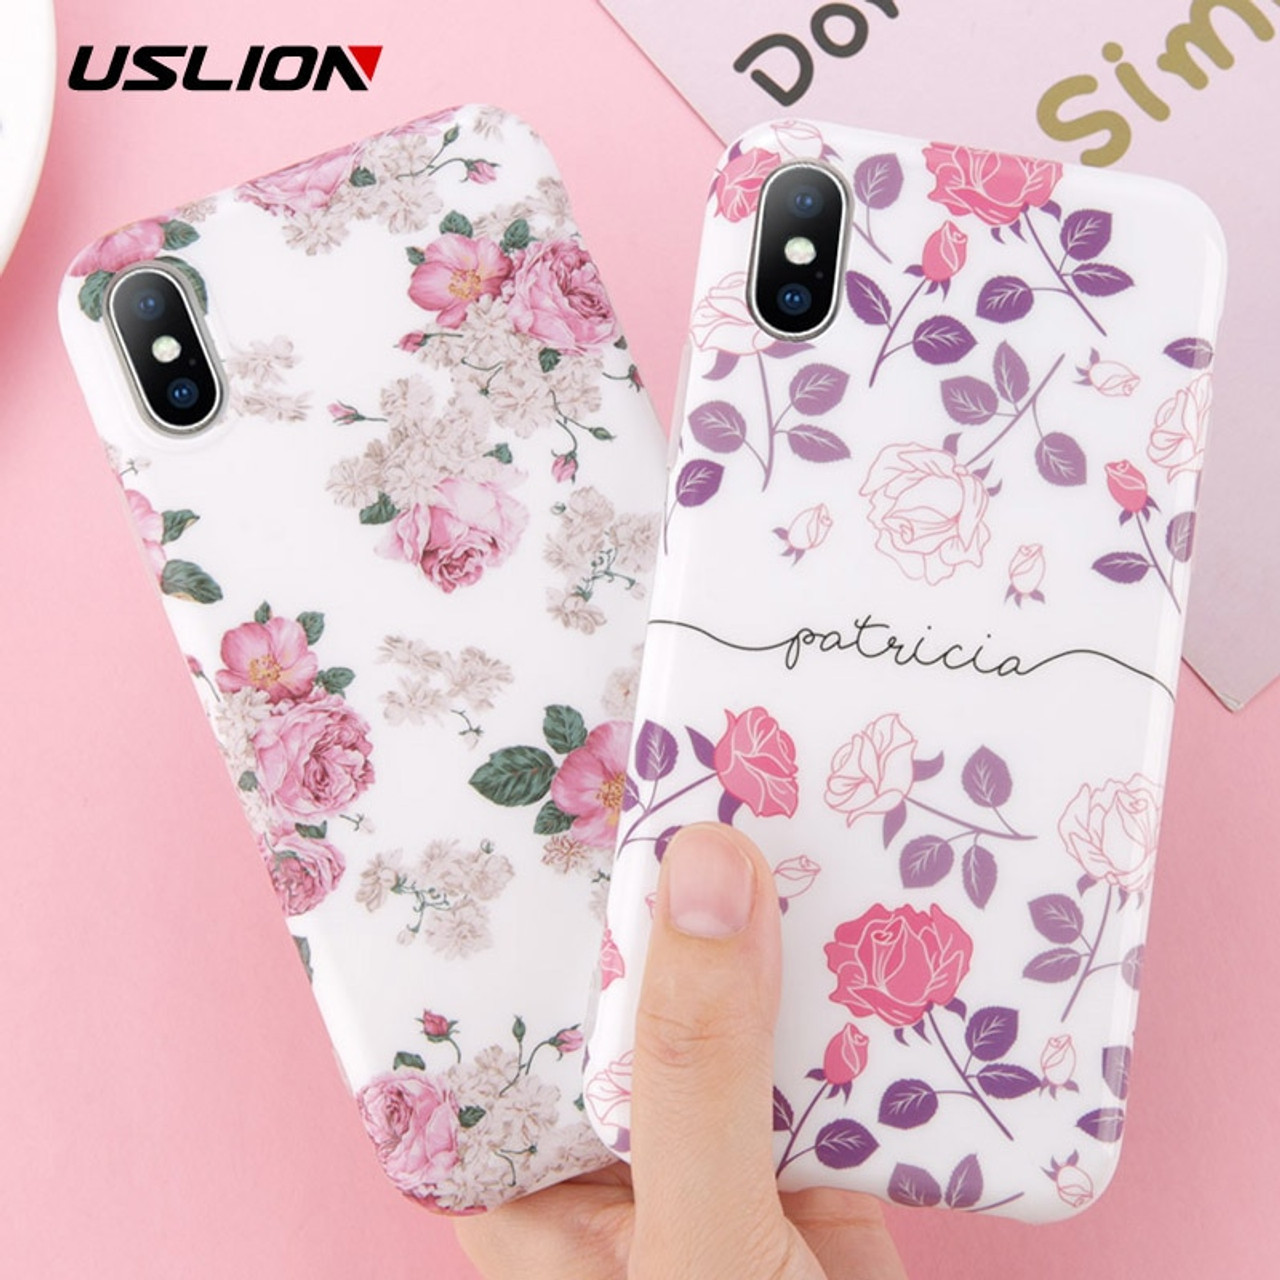 arrives 6858f 1cc82 USLION Flower Phone Case For iPhone 7 8 Plus Rose Floral Love Heart Soft  TPU Back Cover For iPhone X 7 6 6S Plus Silicone Cases